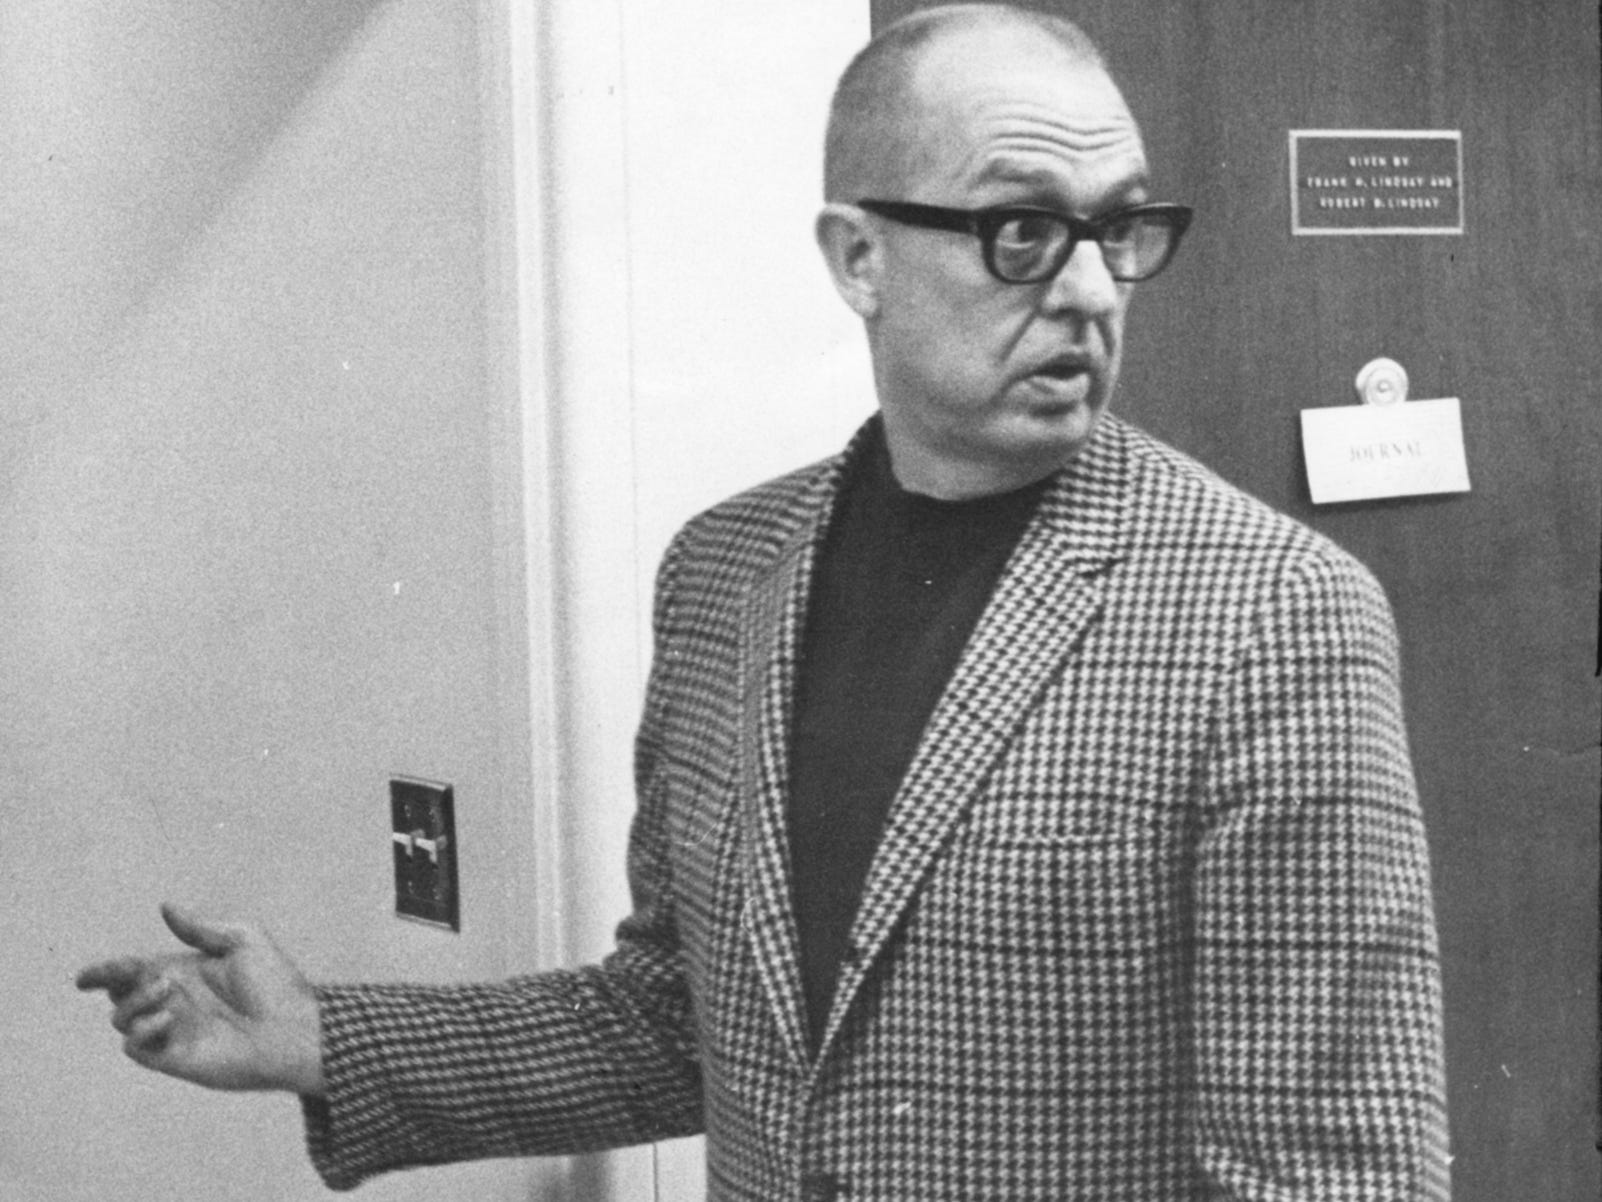 August K. Bergenthal, the accused killer of Universal Foods Chairman Russell D.L. Wirth, stops before entering the hospital room of Wirth's widow, Mary Wirth, at Columbia Hospital on Oct. 7, 1968. The hospital room was the site of a preliminary hearing in the case against Bergenthal, during which Mrs. Wirth, still recovering from being shot by Bergenthal the same night her husband was killed, testified that her husband had told her that Bergenthal had stolen money from the company years earlier and had been discharged. This photo was published in the Oct. 7, 1968, Milwaukee Journal.